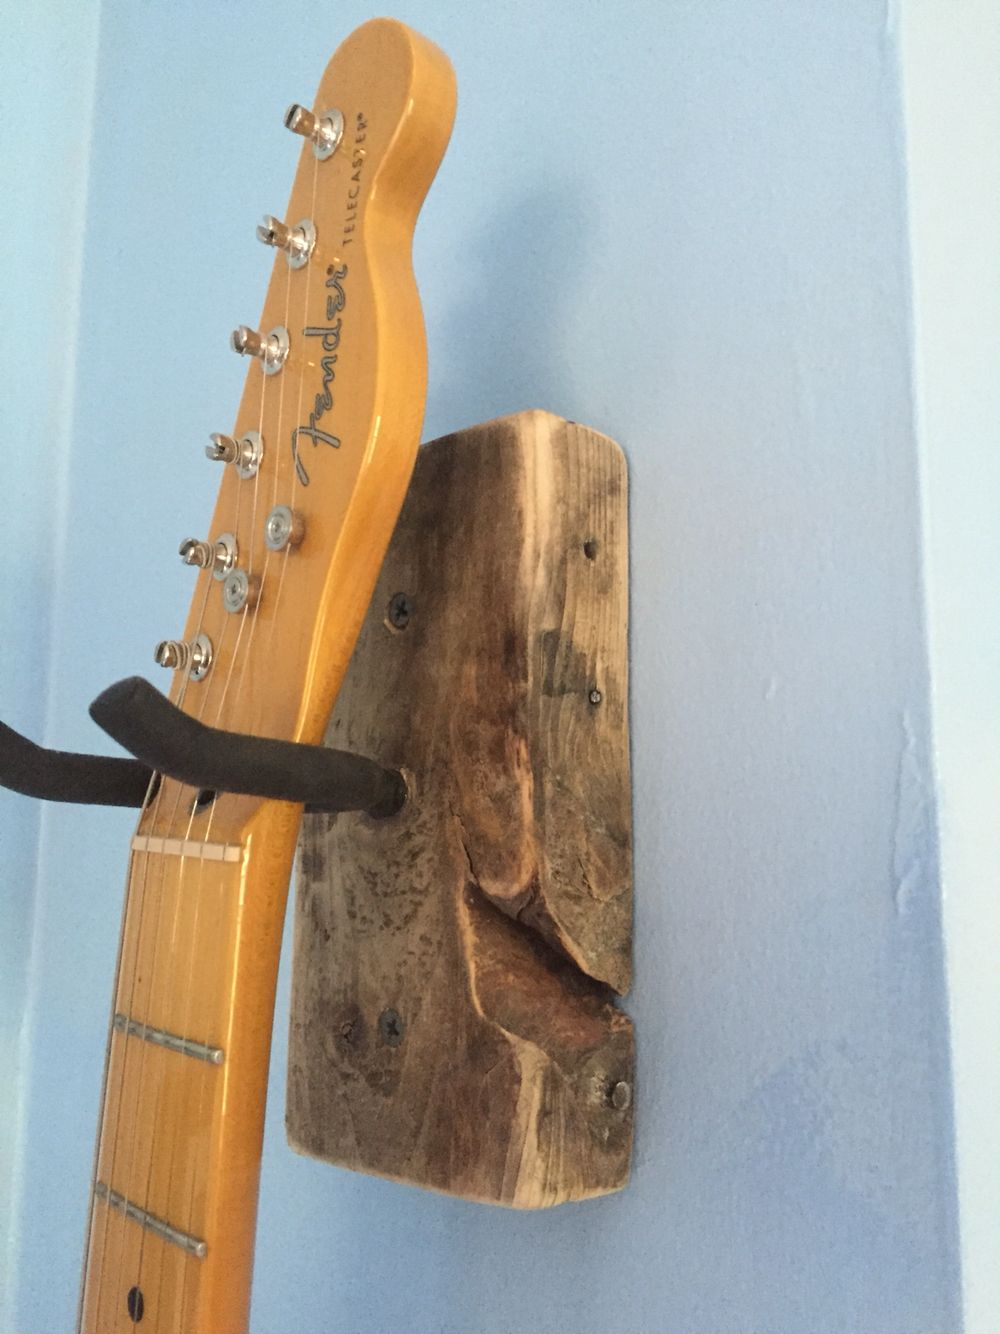 Diy guitar hanger first attempt turned out ok hanger from